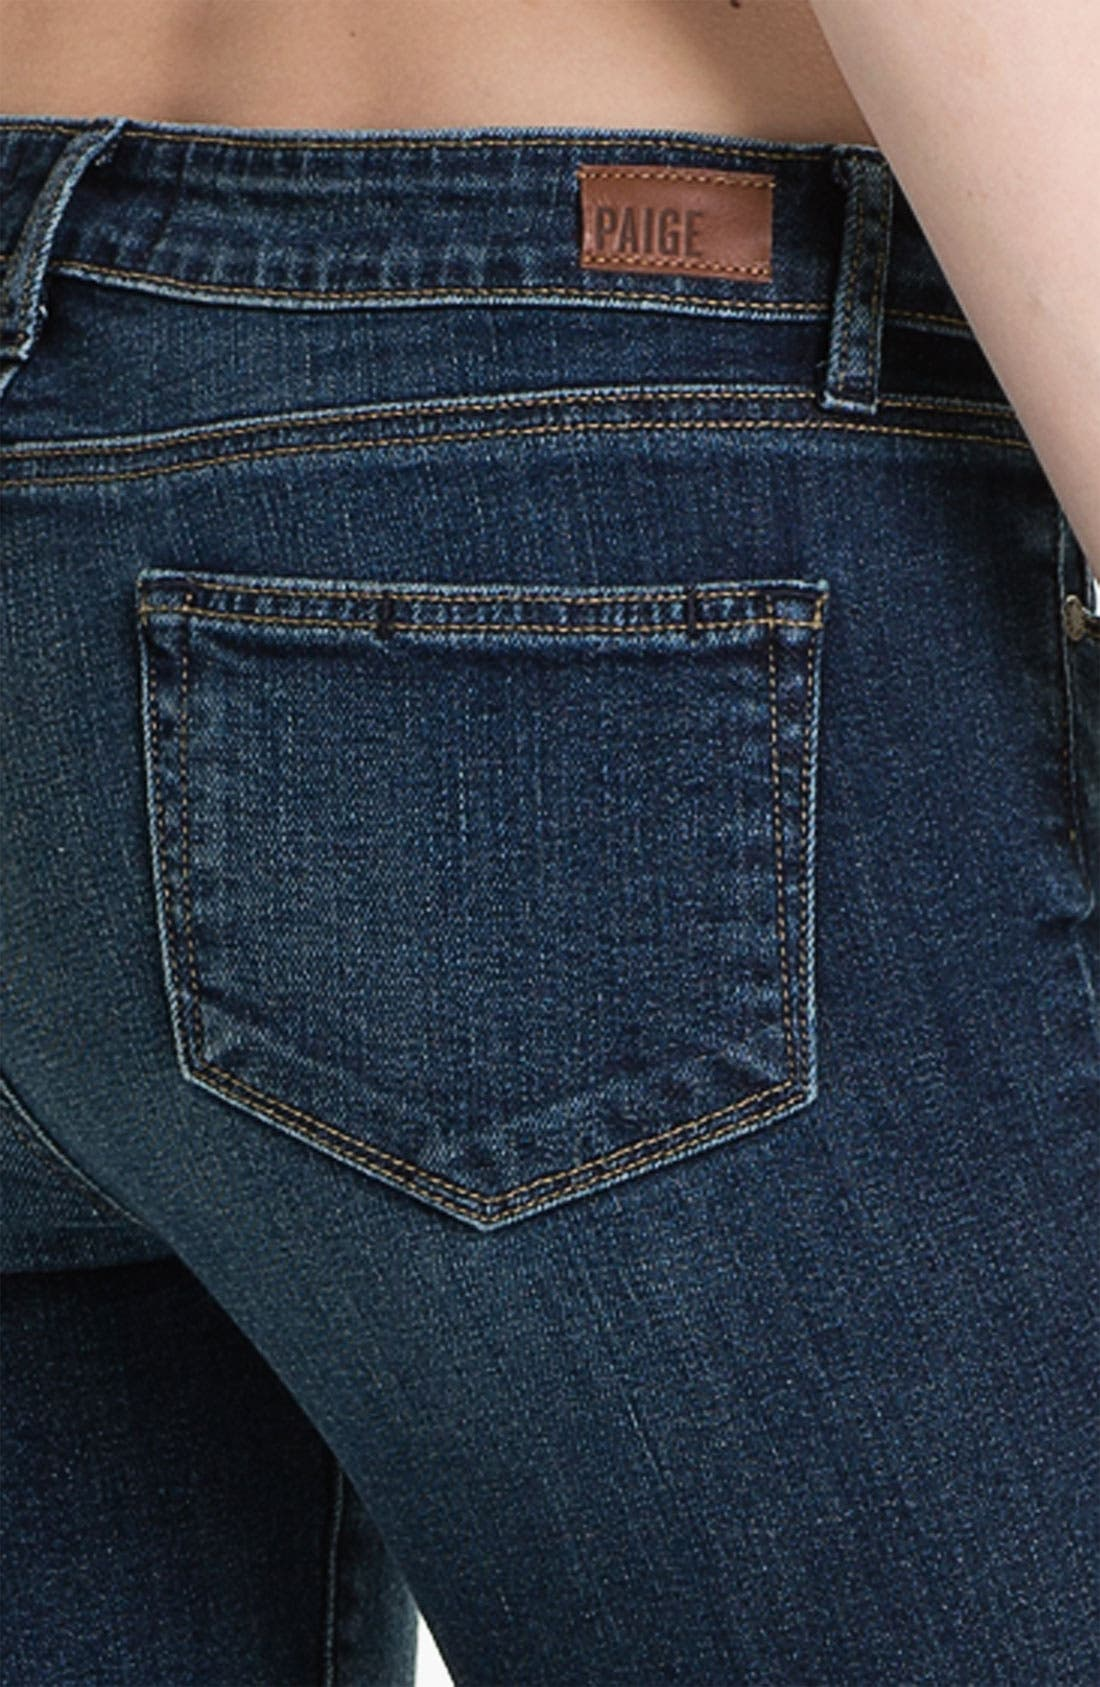 Alternate Image 3  - Paige Denim 'Verdugo' Stretch Denim Skinny Jeans (Benny)